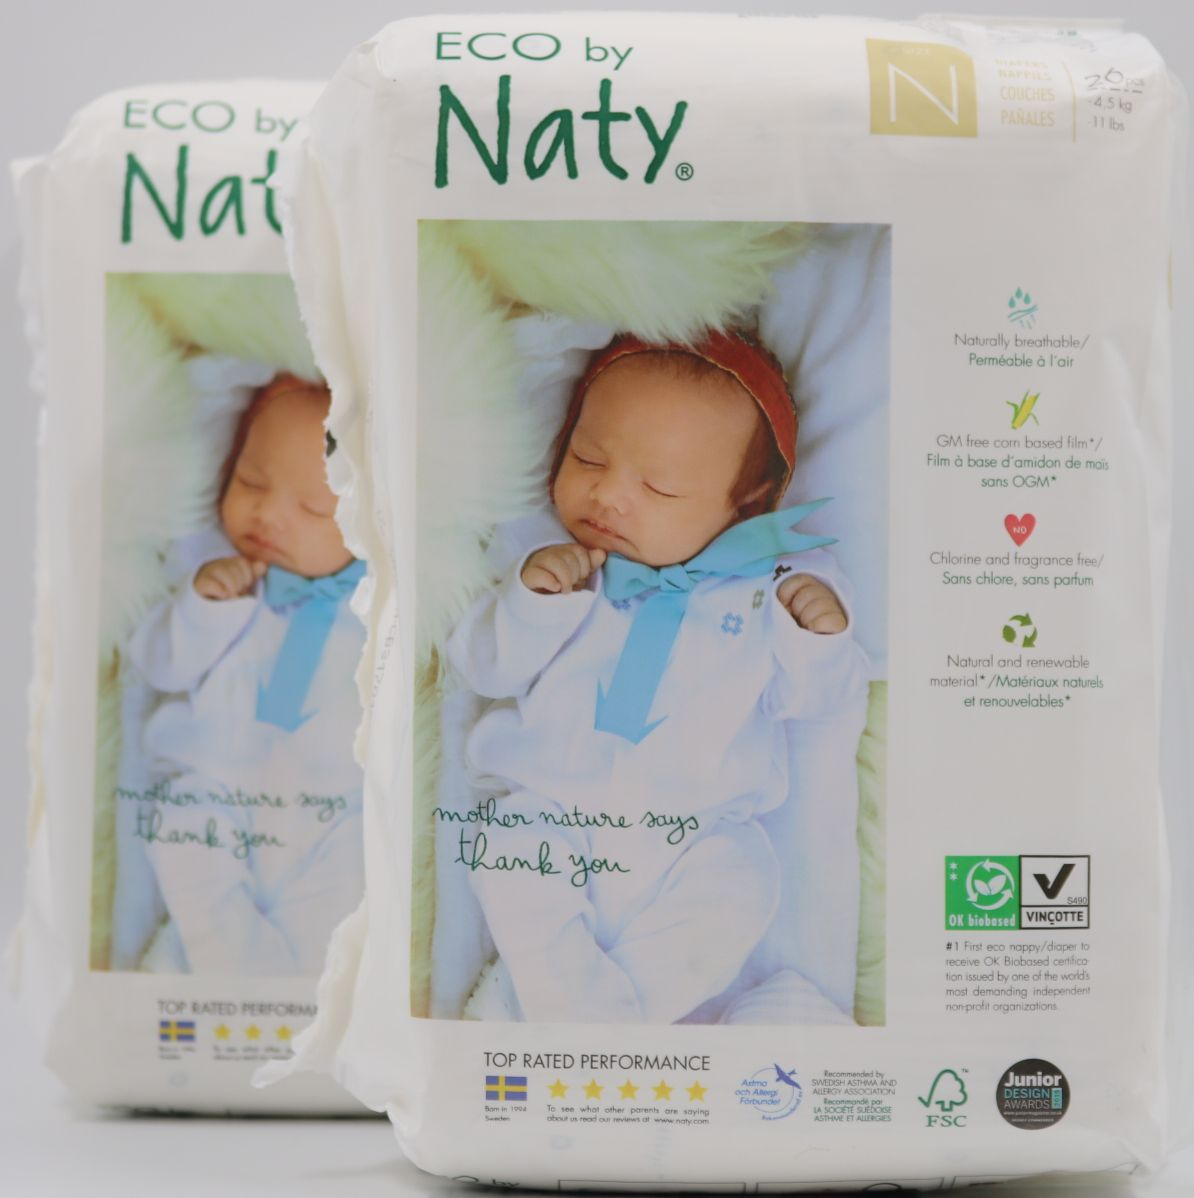 52 Nappies Eco by Naty Babycare Size 3 Nappies--1 x Pack of 52 4-9 kg